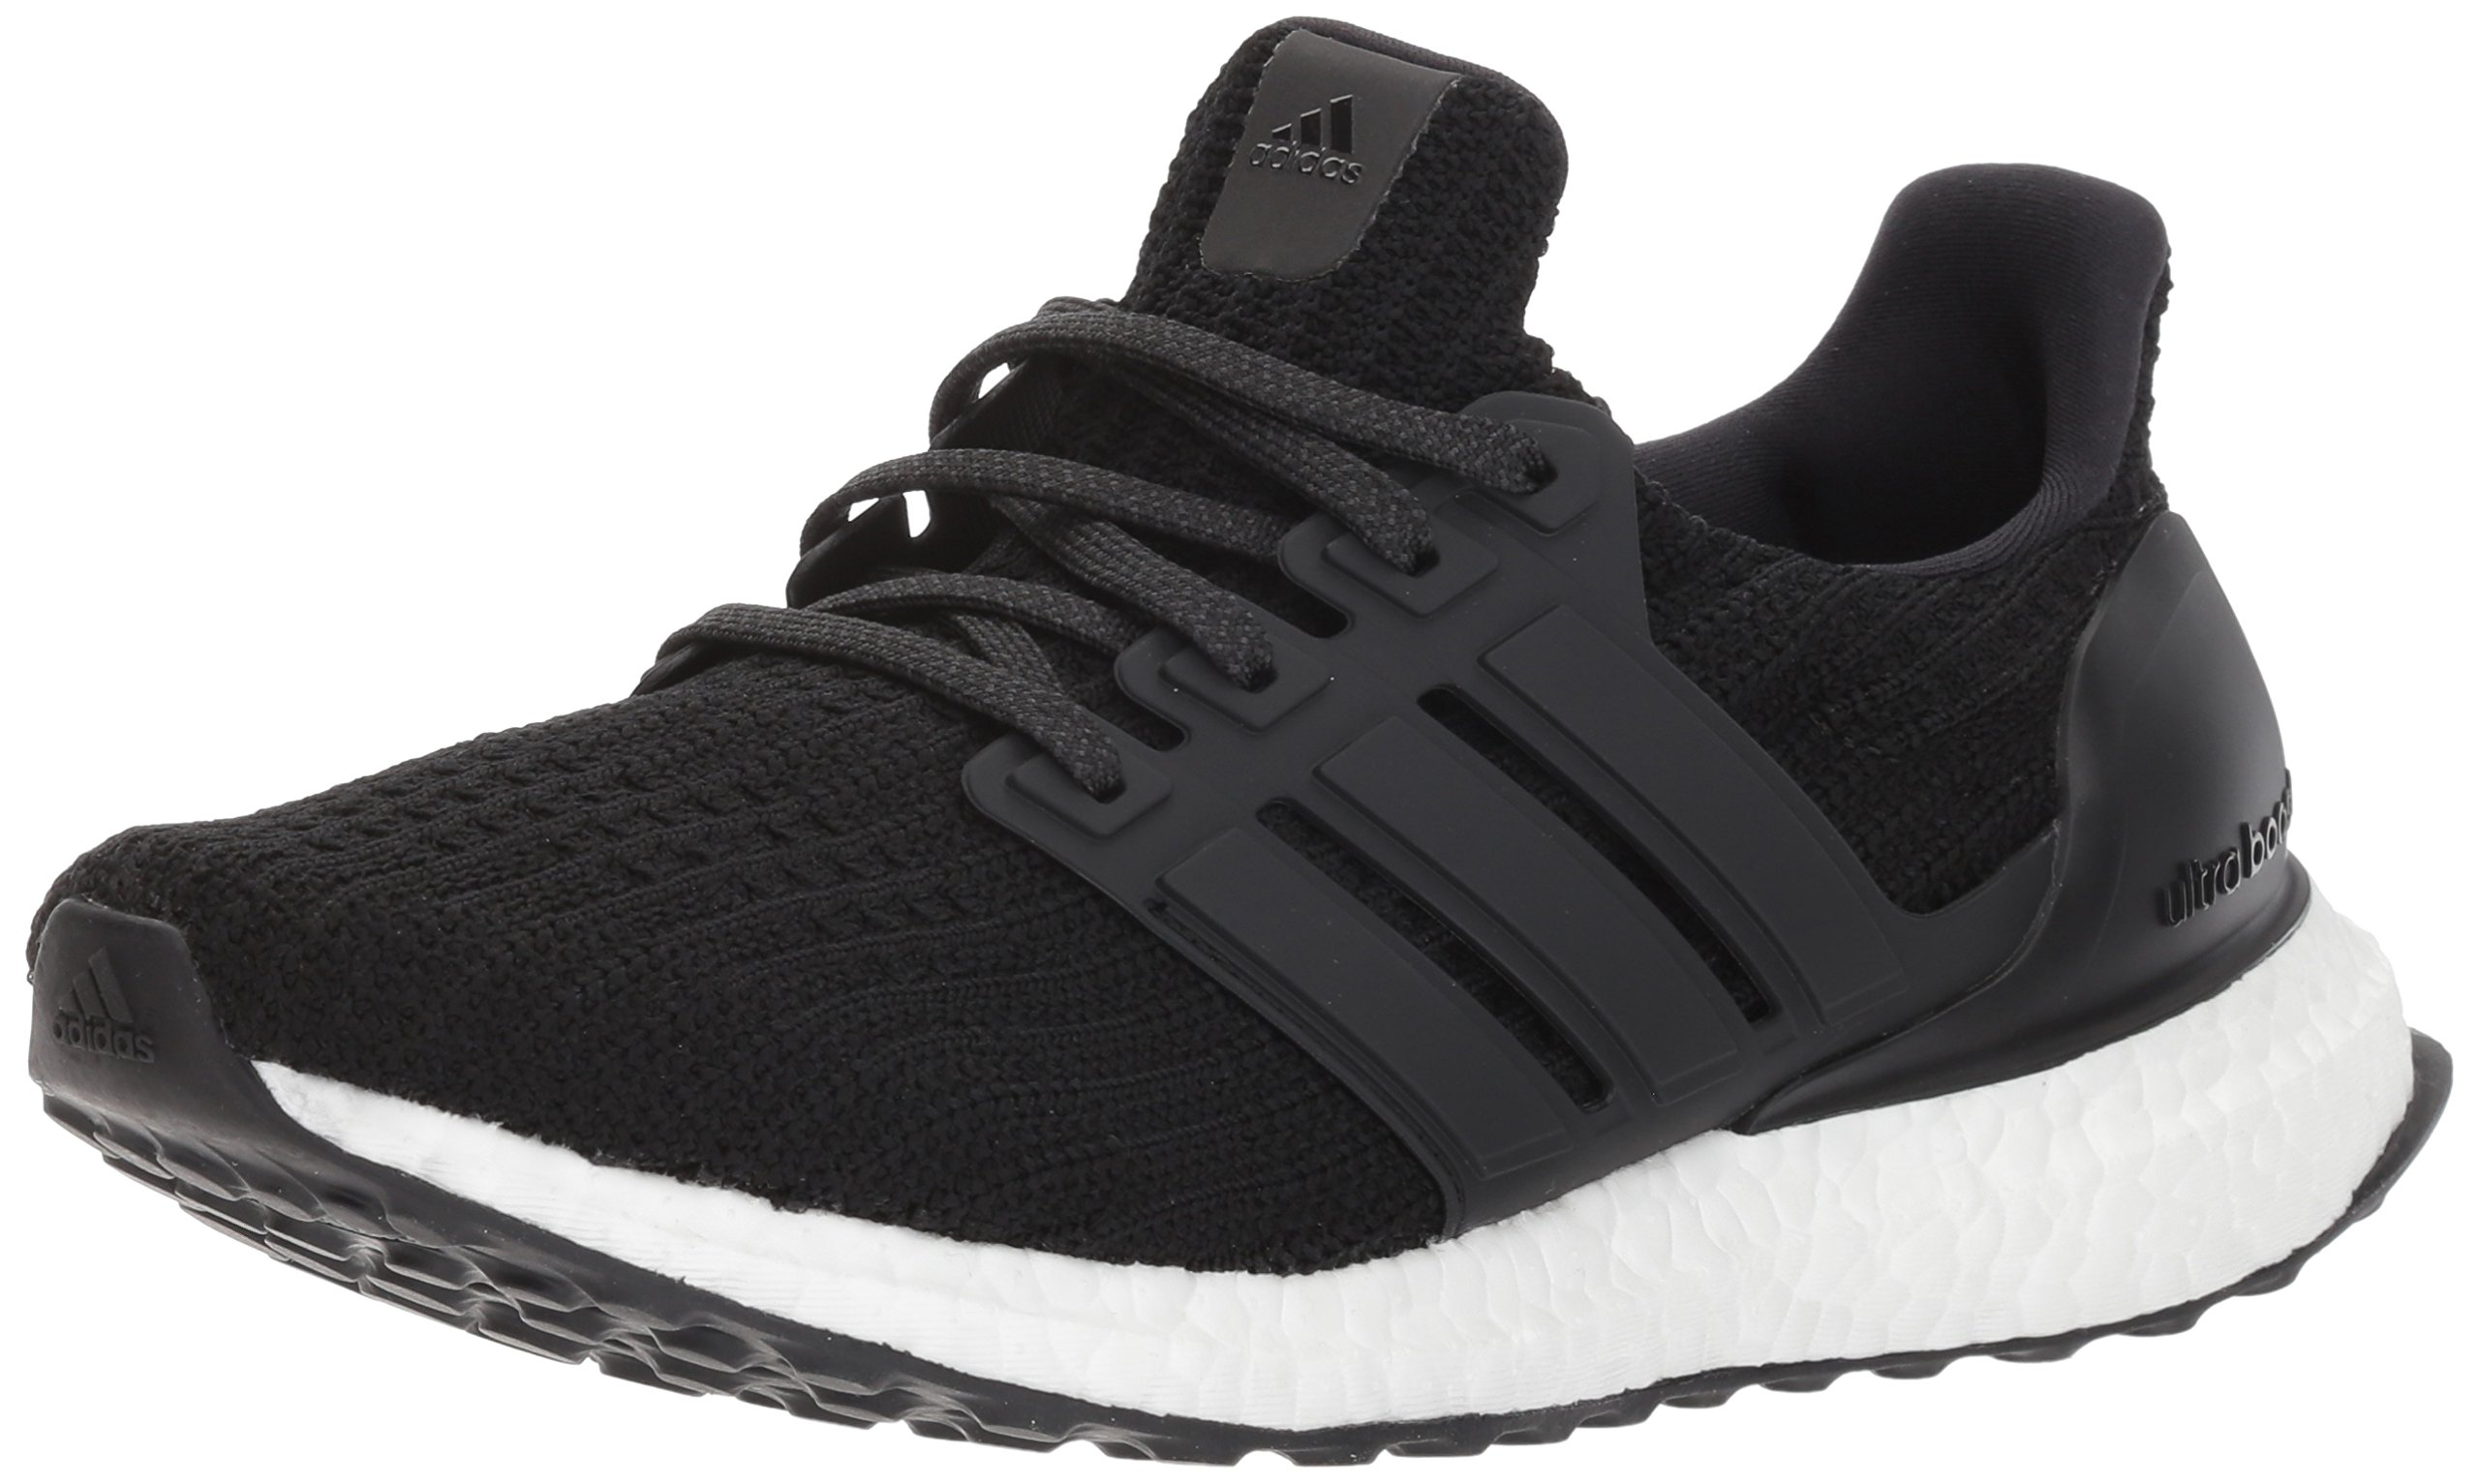 a3ebbad02e9 Adidas Ultra Boost Black Top Deals   Lowest Price